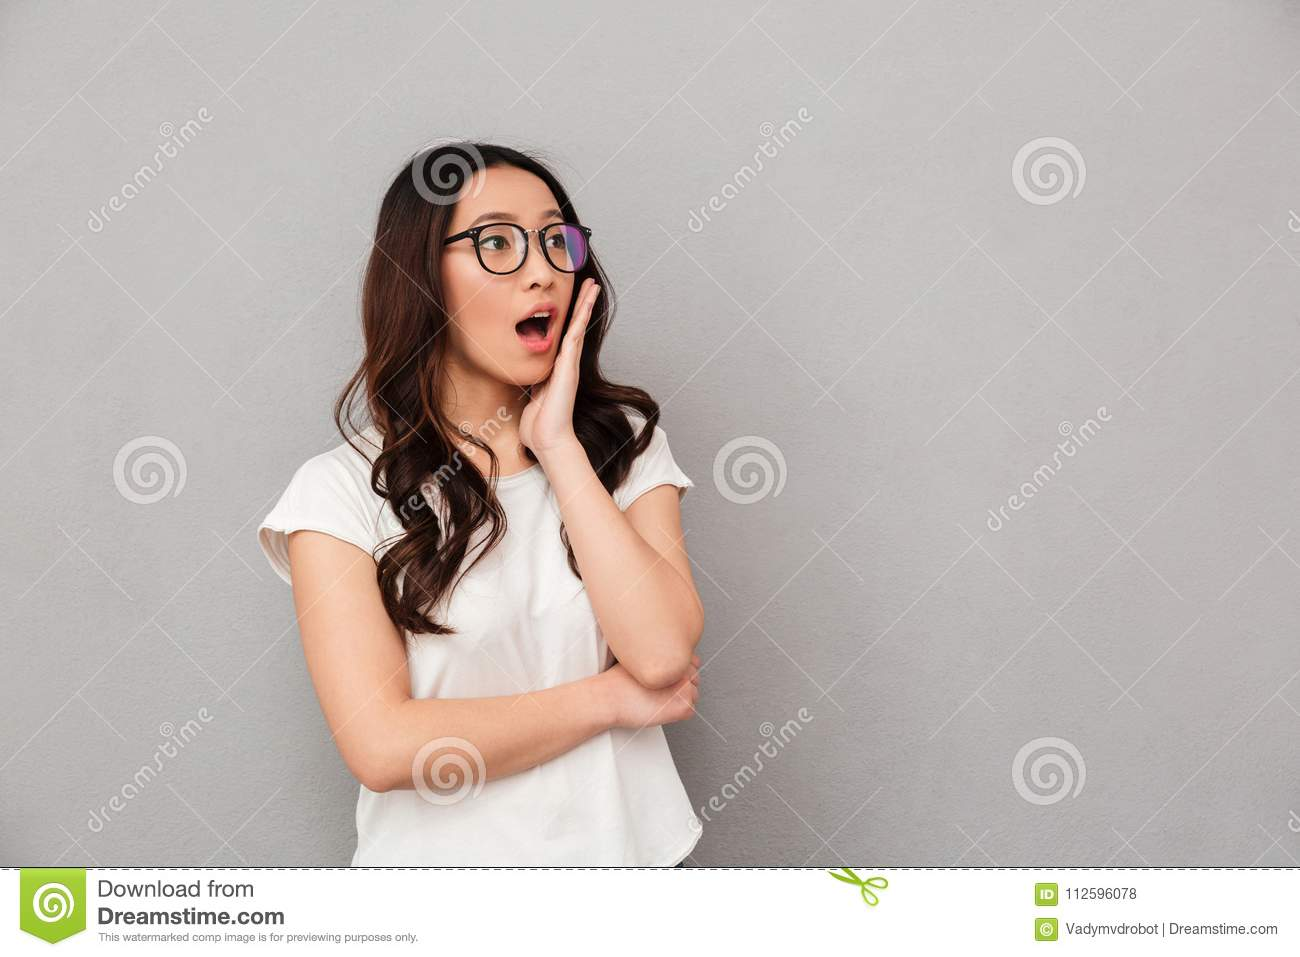 Shocked asian woman in t-shirt and eyeglasses holding her cheek